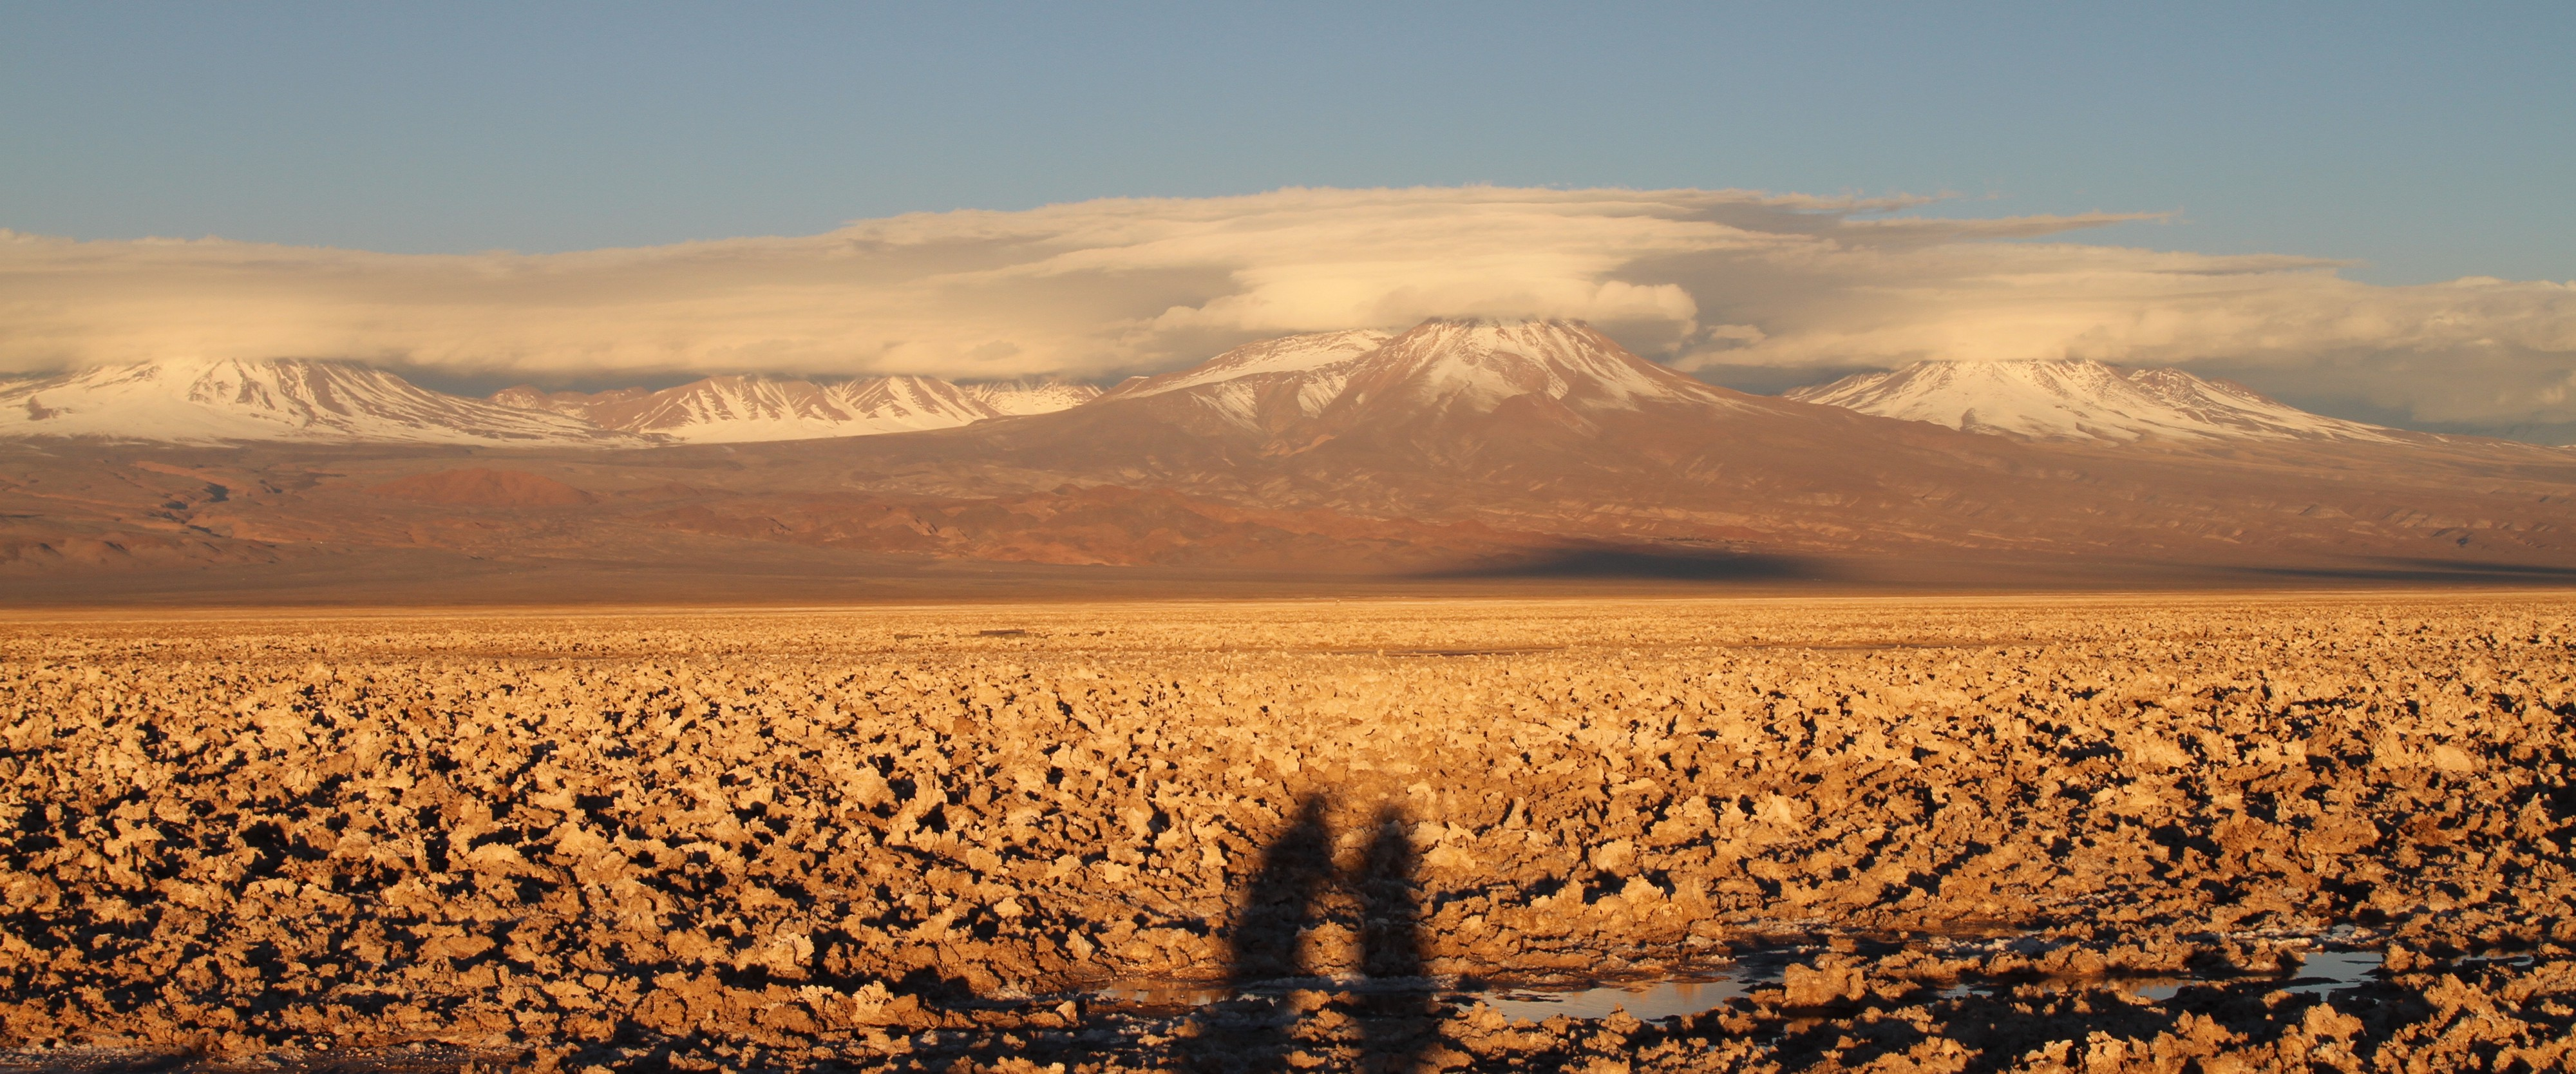 Silhouette of a couple in front of a landscape of desert and snow-capped mountain peaks